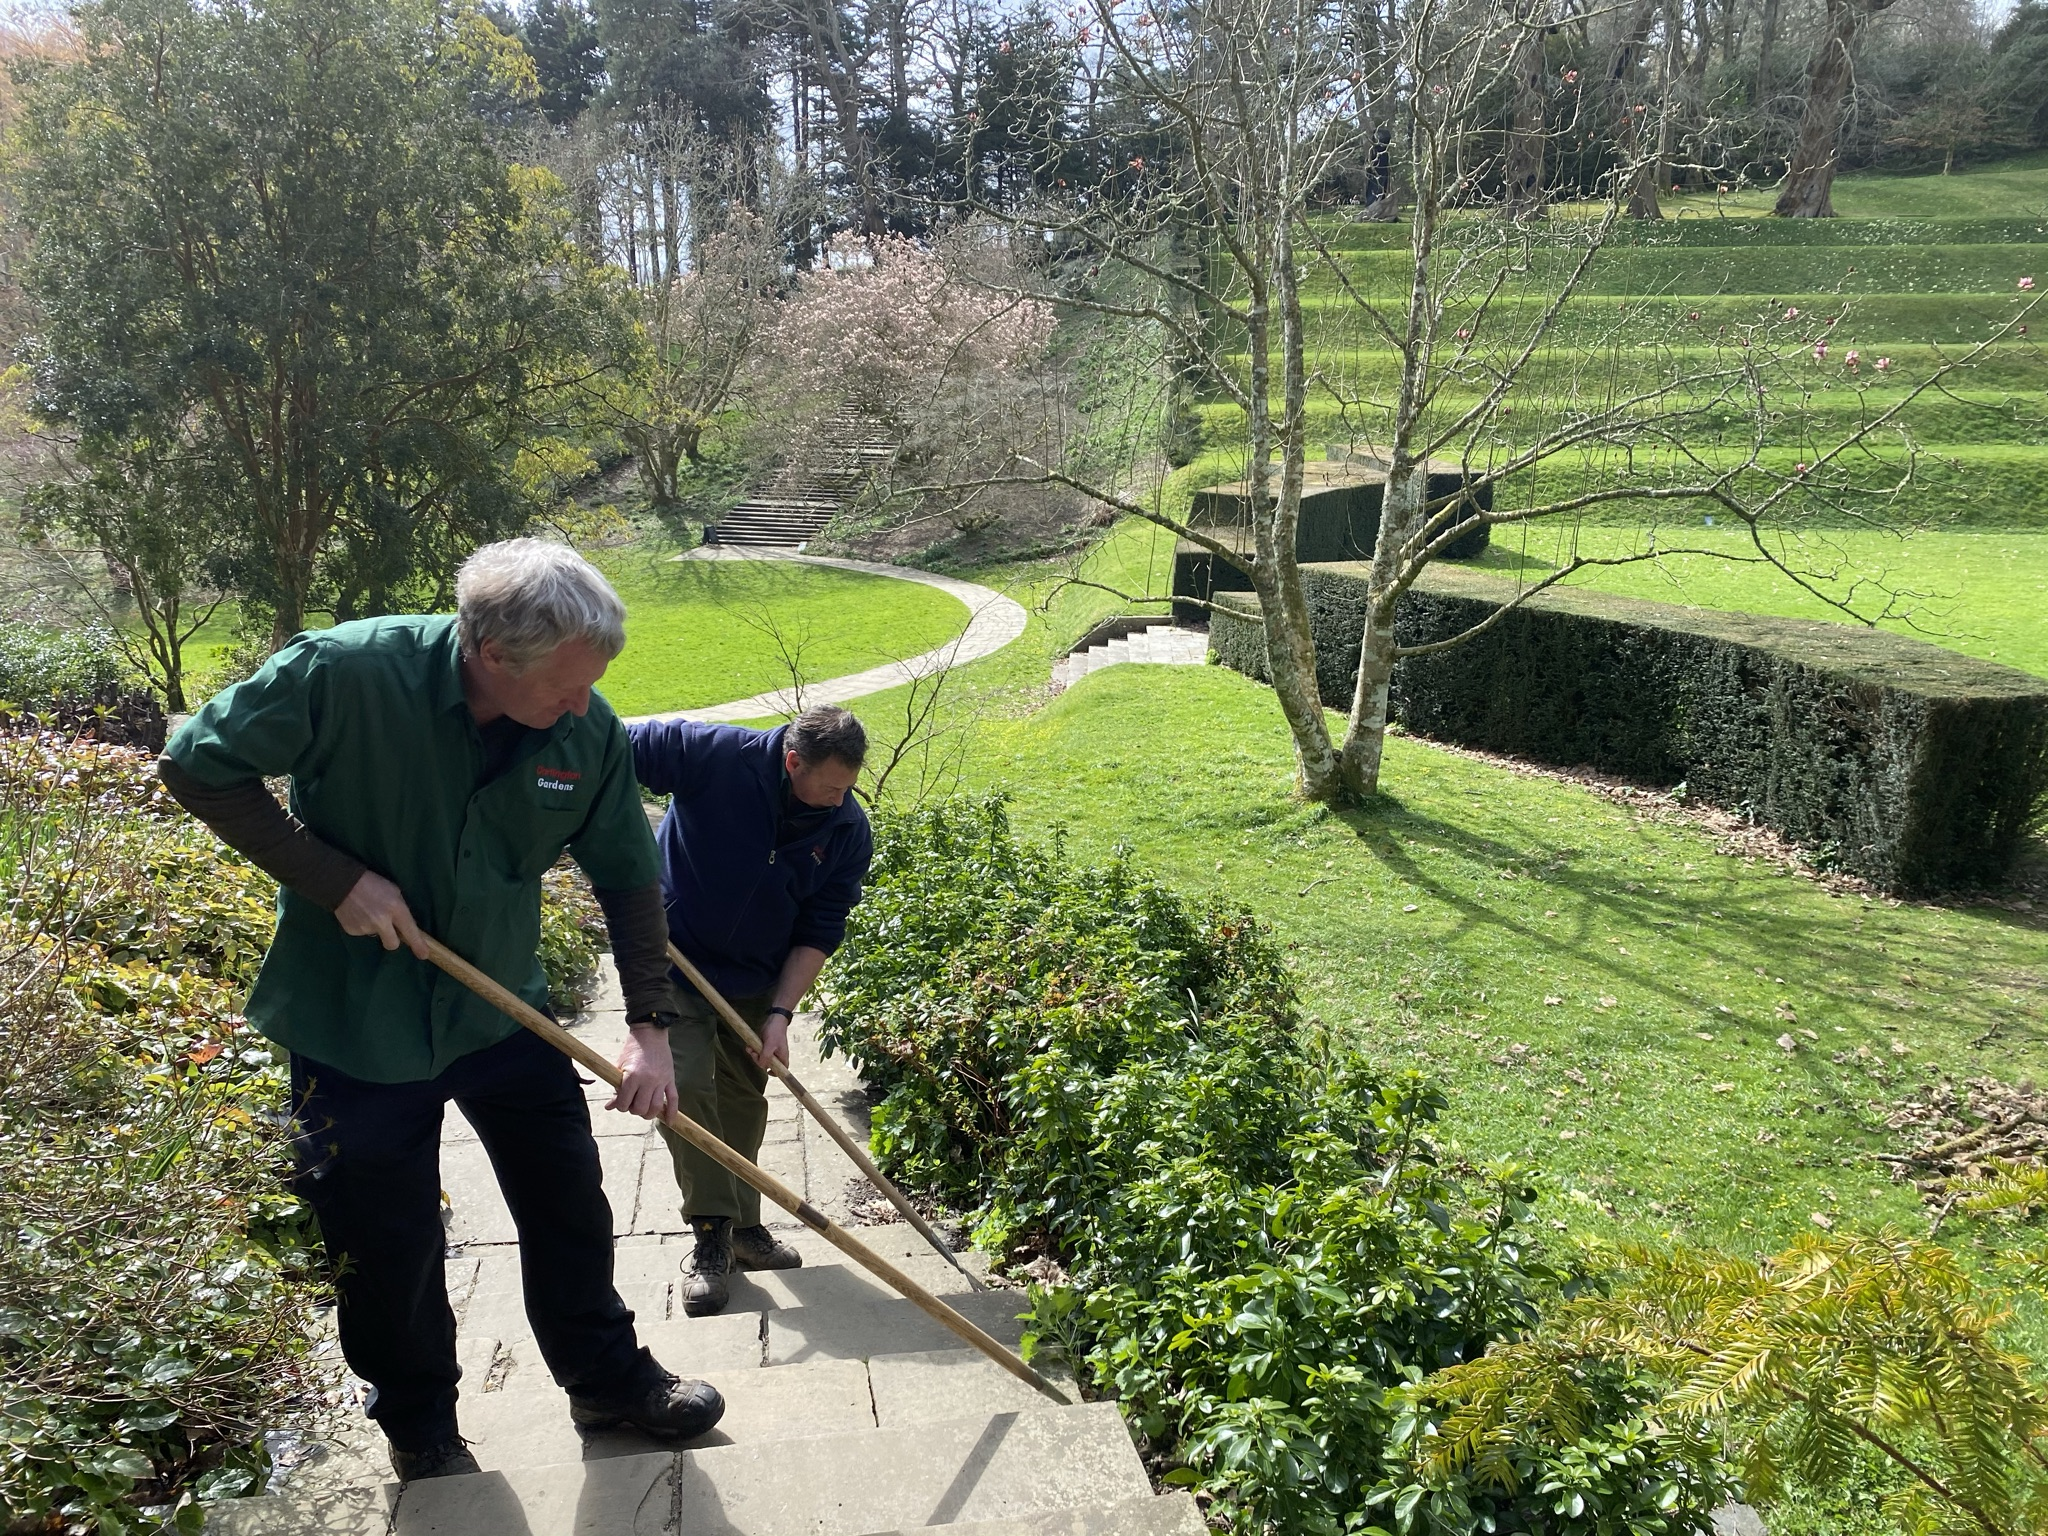 Mike and fellow gardener Richard Hunt at work in the Gardens